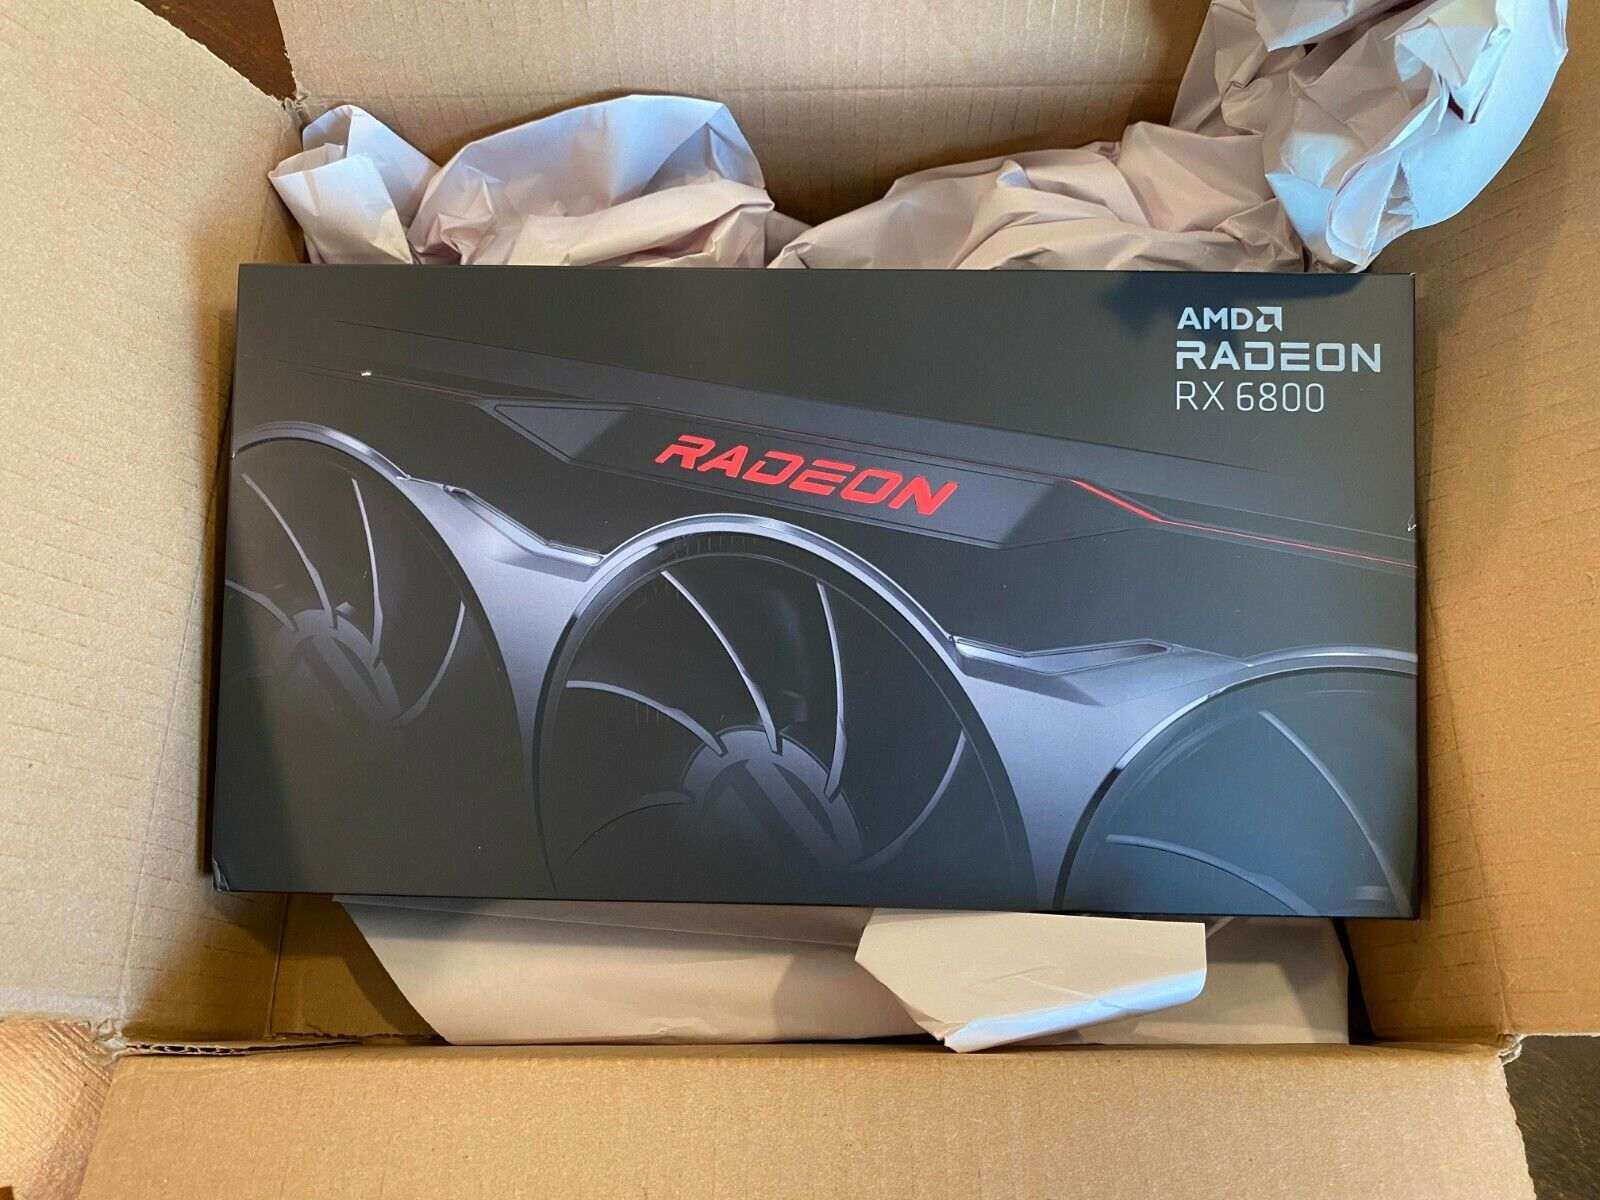 AMD Radeon RX 6800 Graphics Card GPU *IN HAND*